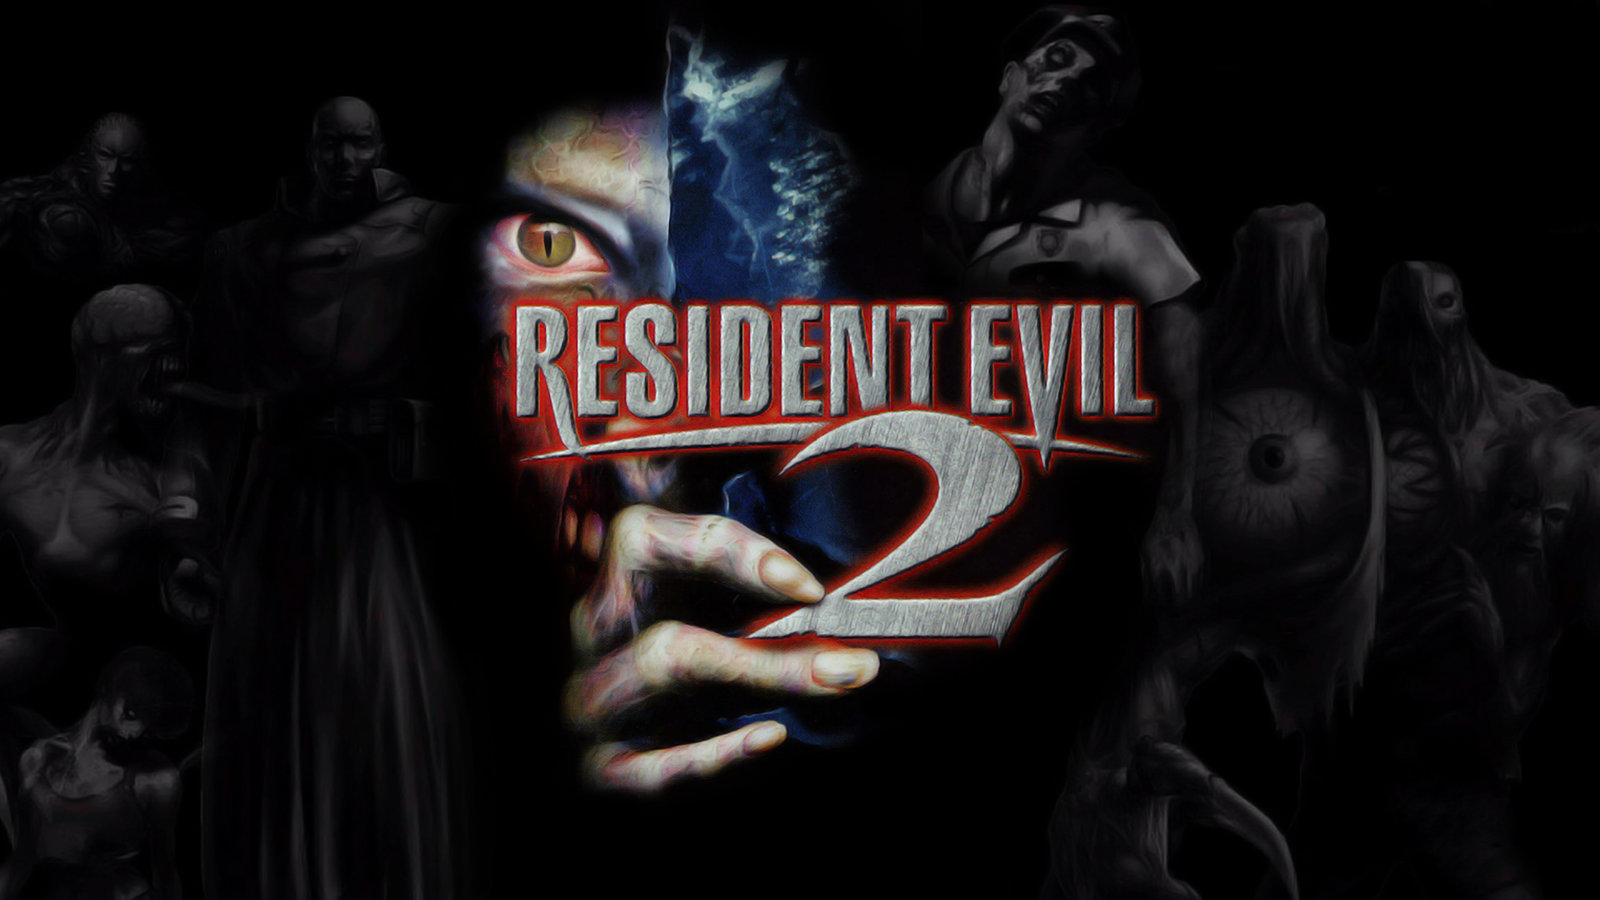 https://www.pirates-of-games.com/2020/07/Resident-Evil-2.html